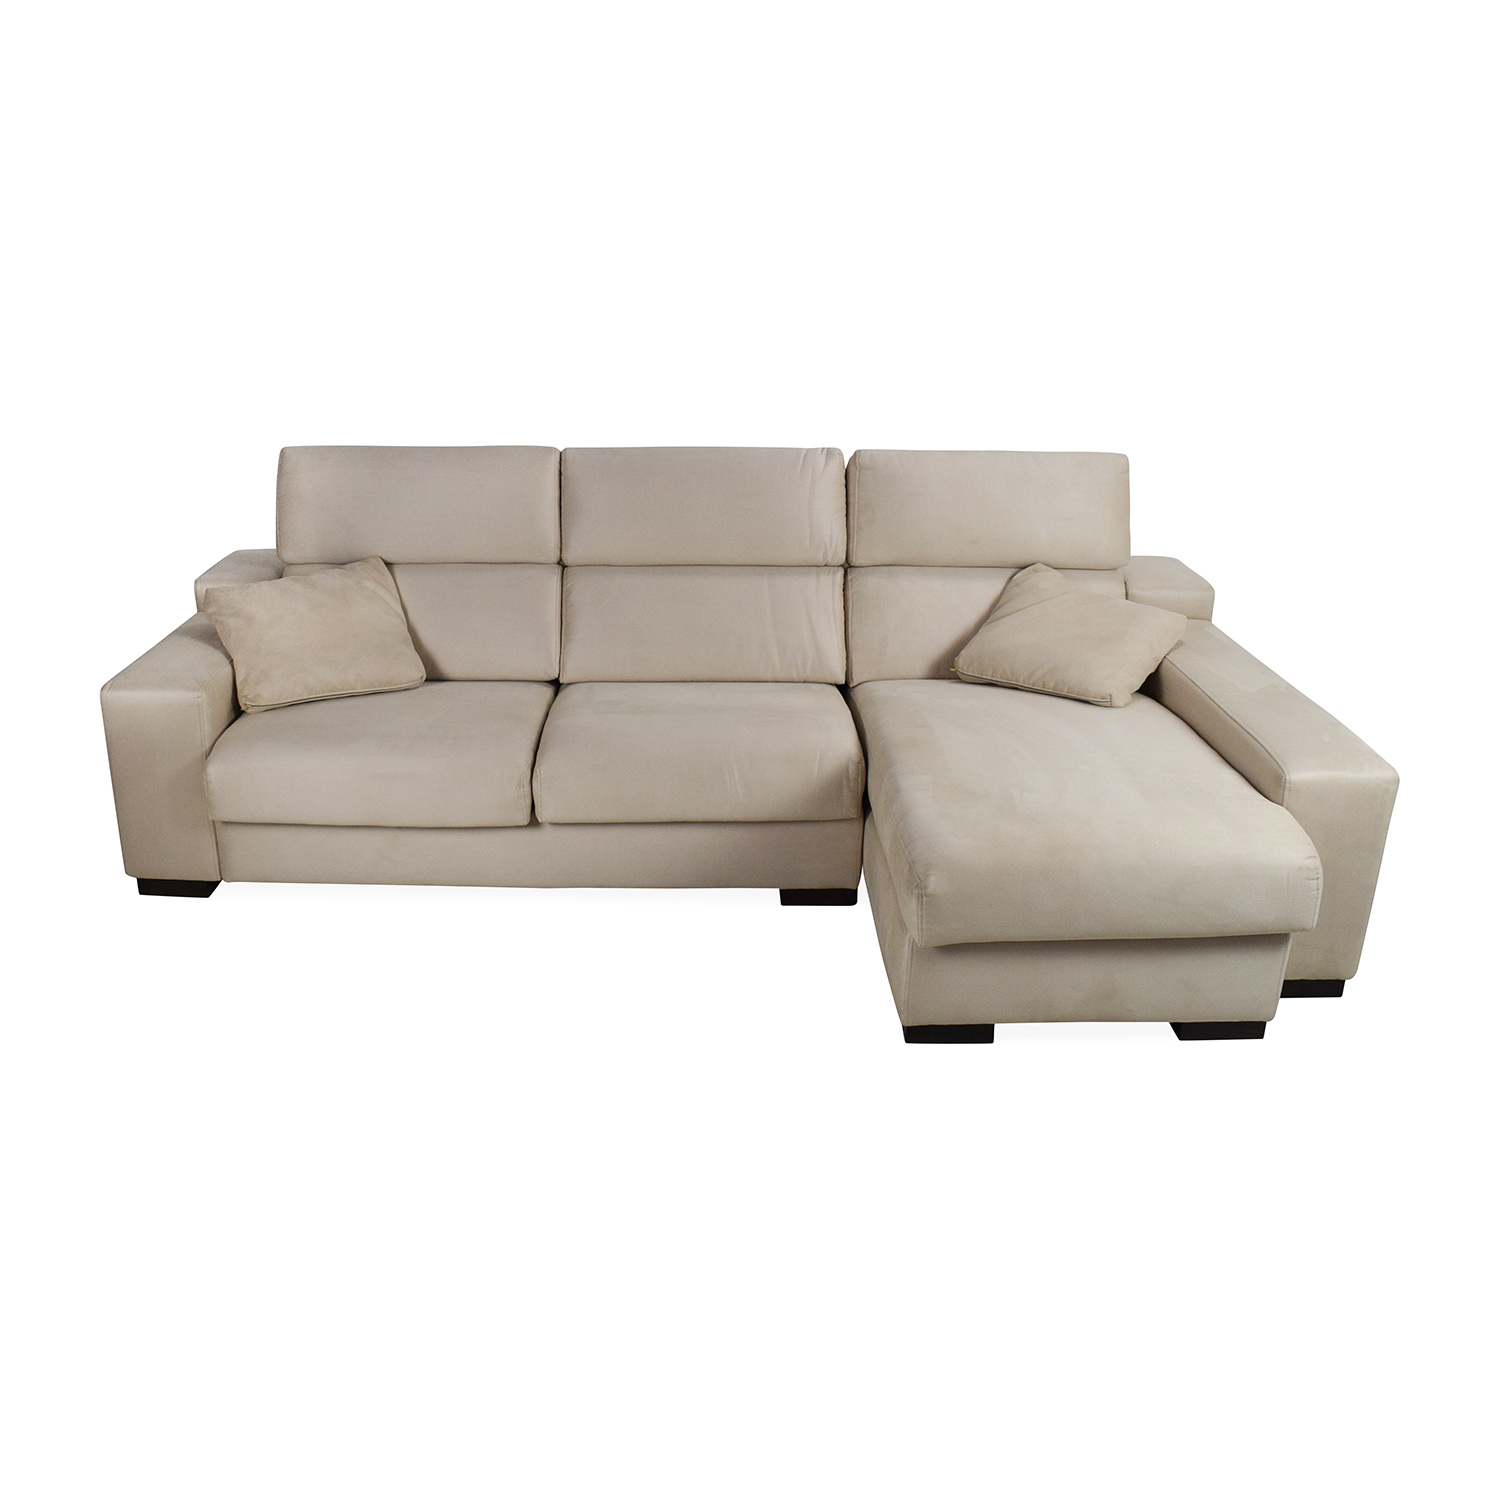 ... - Jennifer Convertibles Jennifer Convertibles Sectional Sofa / Sofas